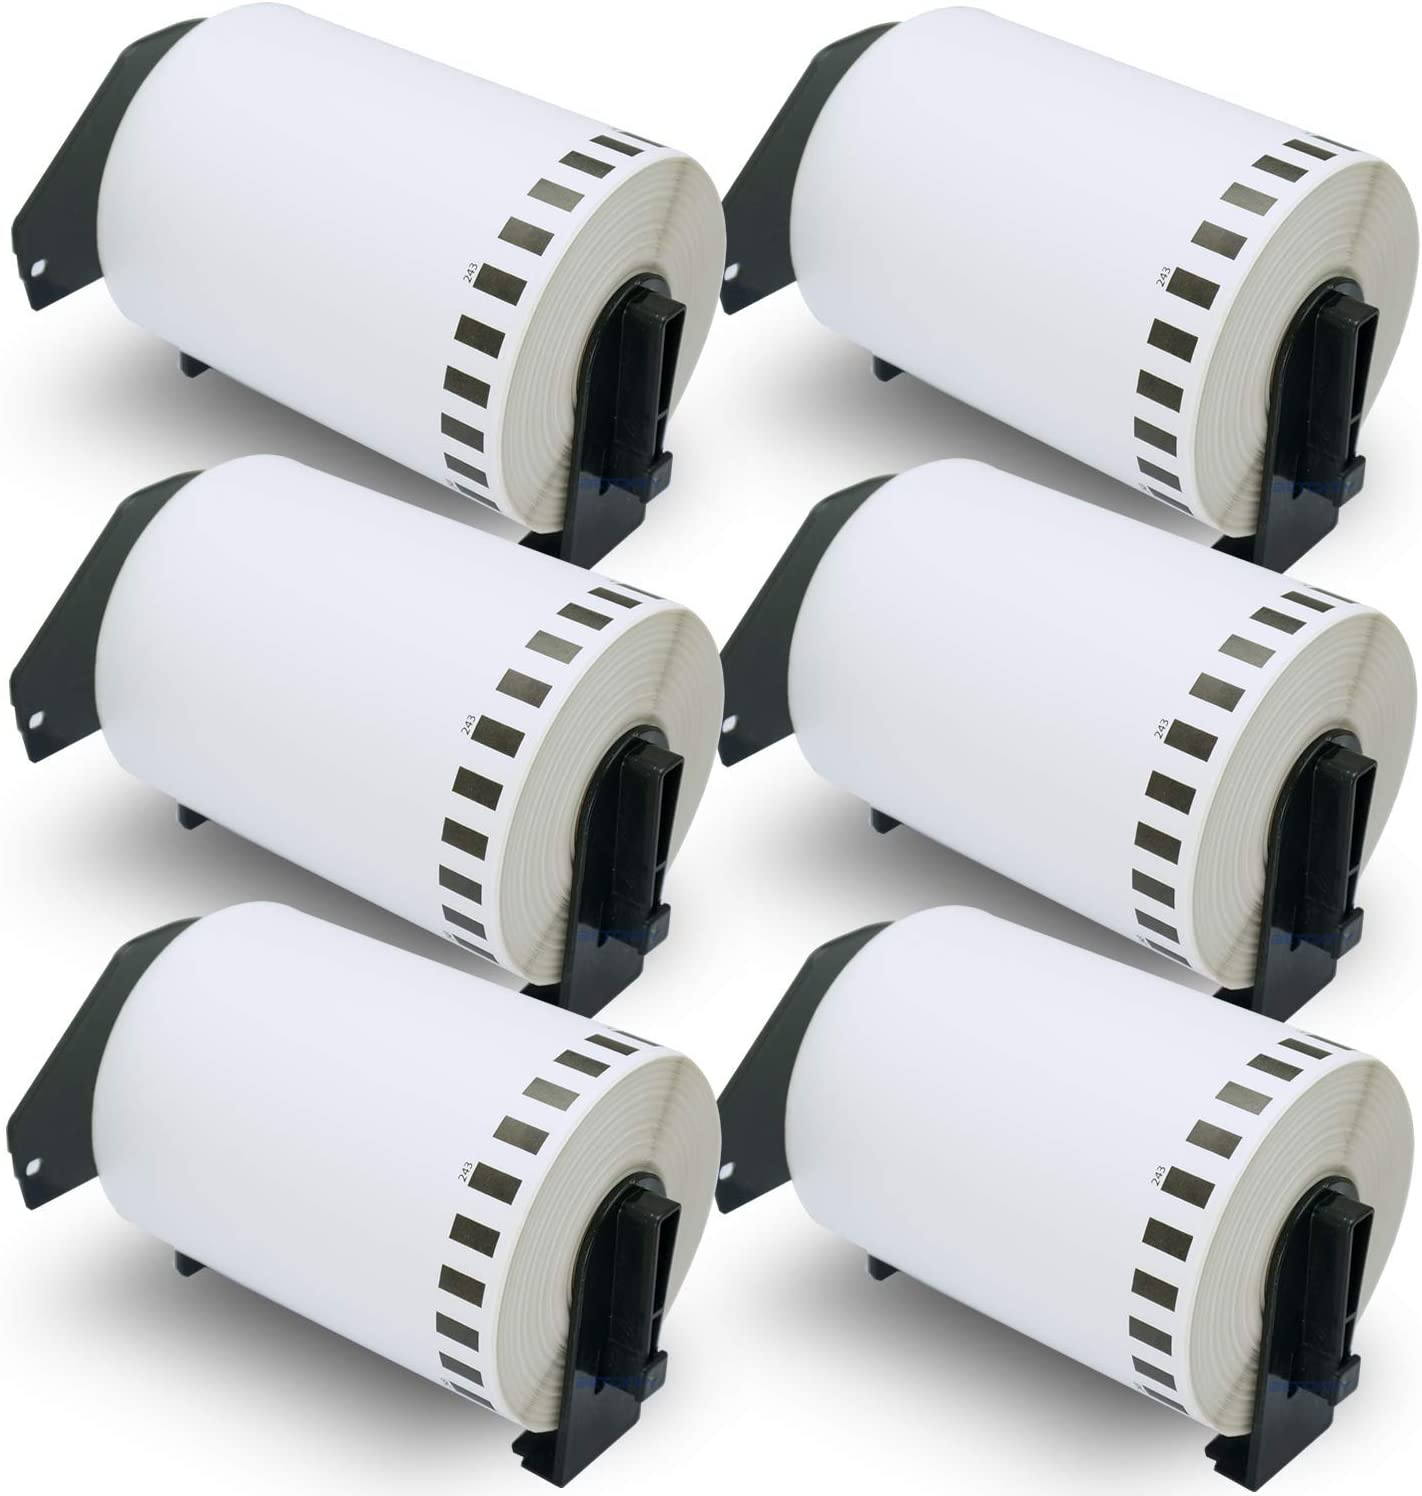 """BETCKEY - Compatible DK-2243 Continuous 4"""" x 100' Replacement Labels, Compatible with Brother QL Label Printers [6 Rolls with Refillable Cartridge Frame] : Office Products"""